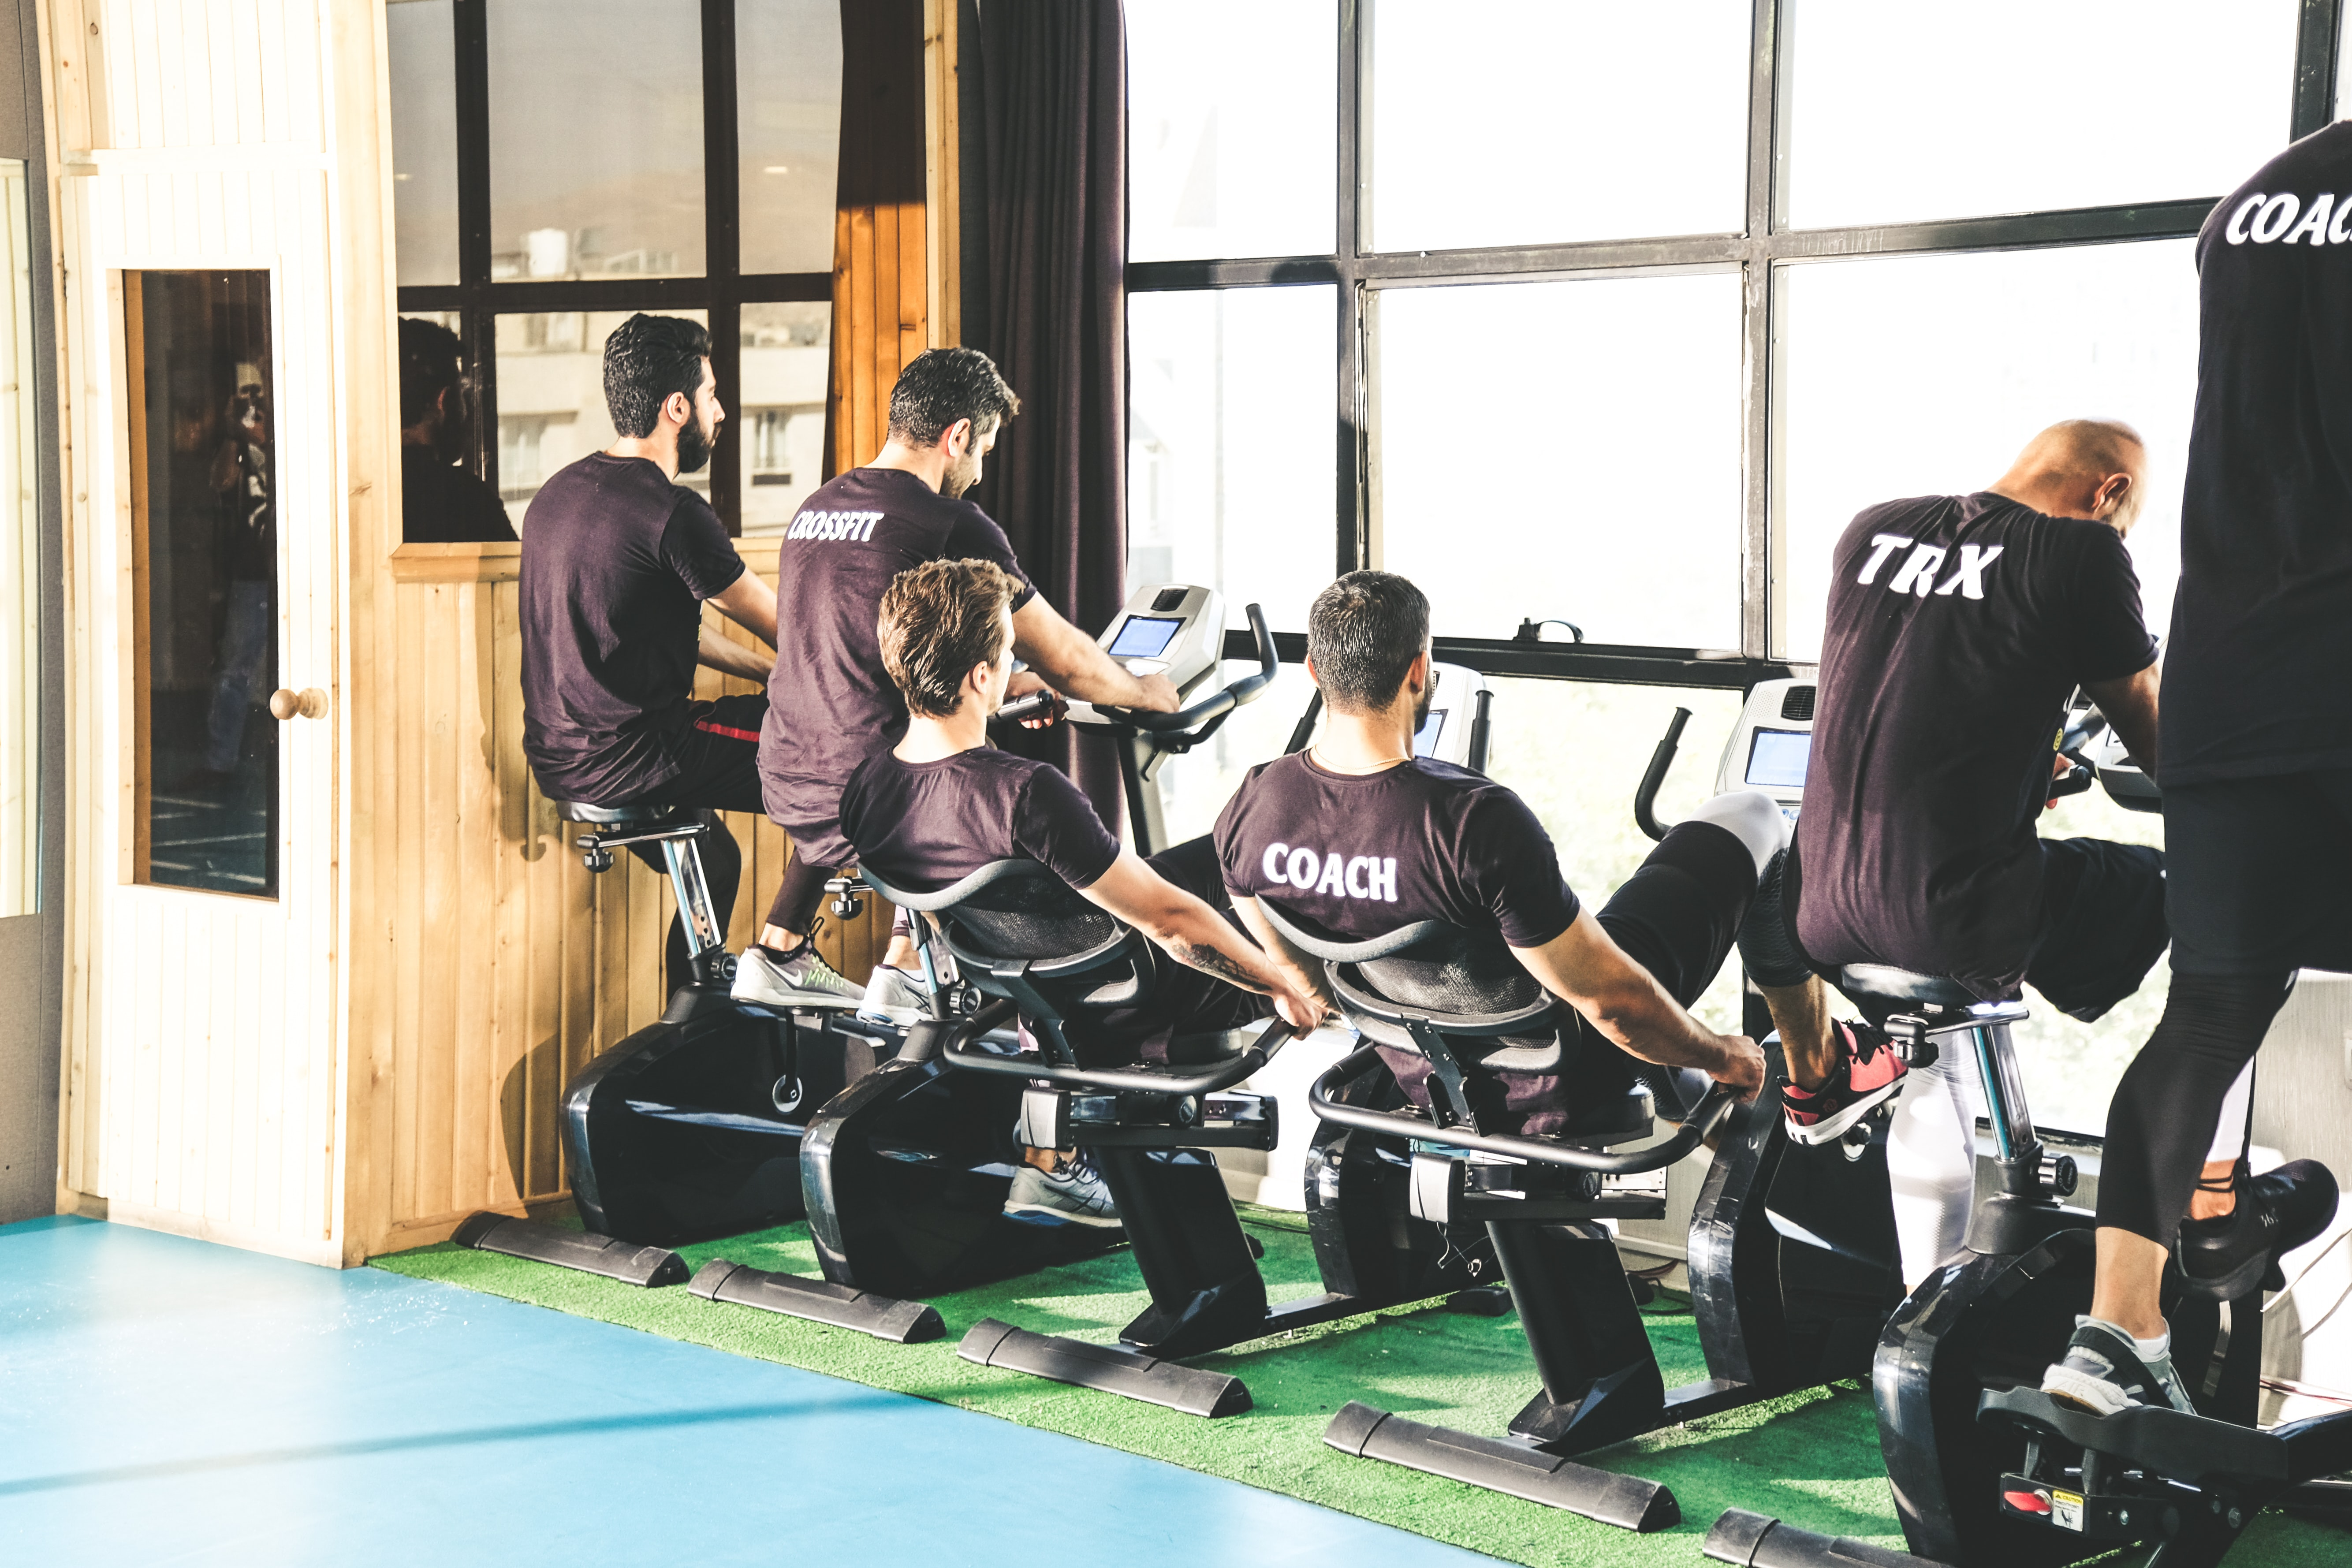 3 Pro Strategies For The Ultimate Post-COVID Gym